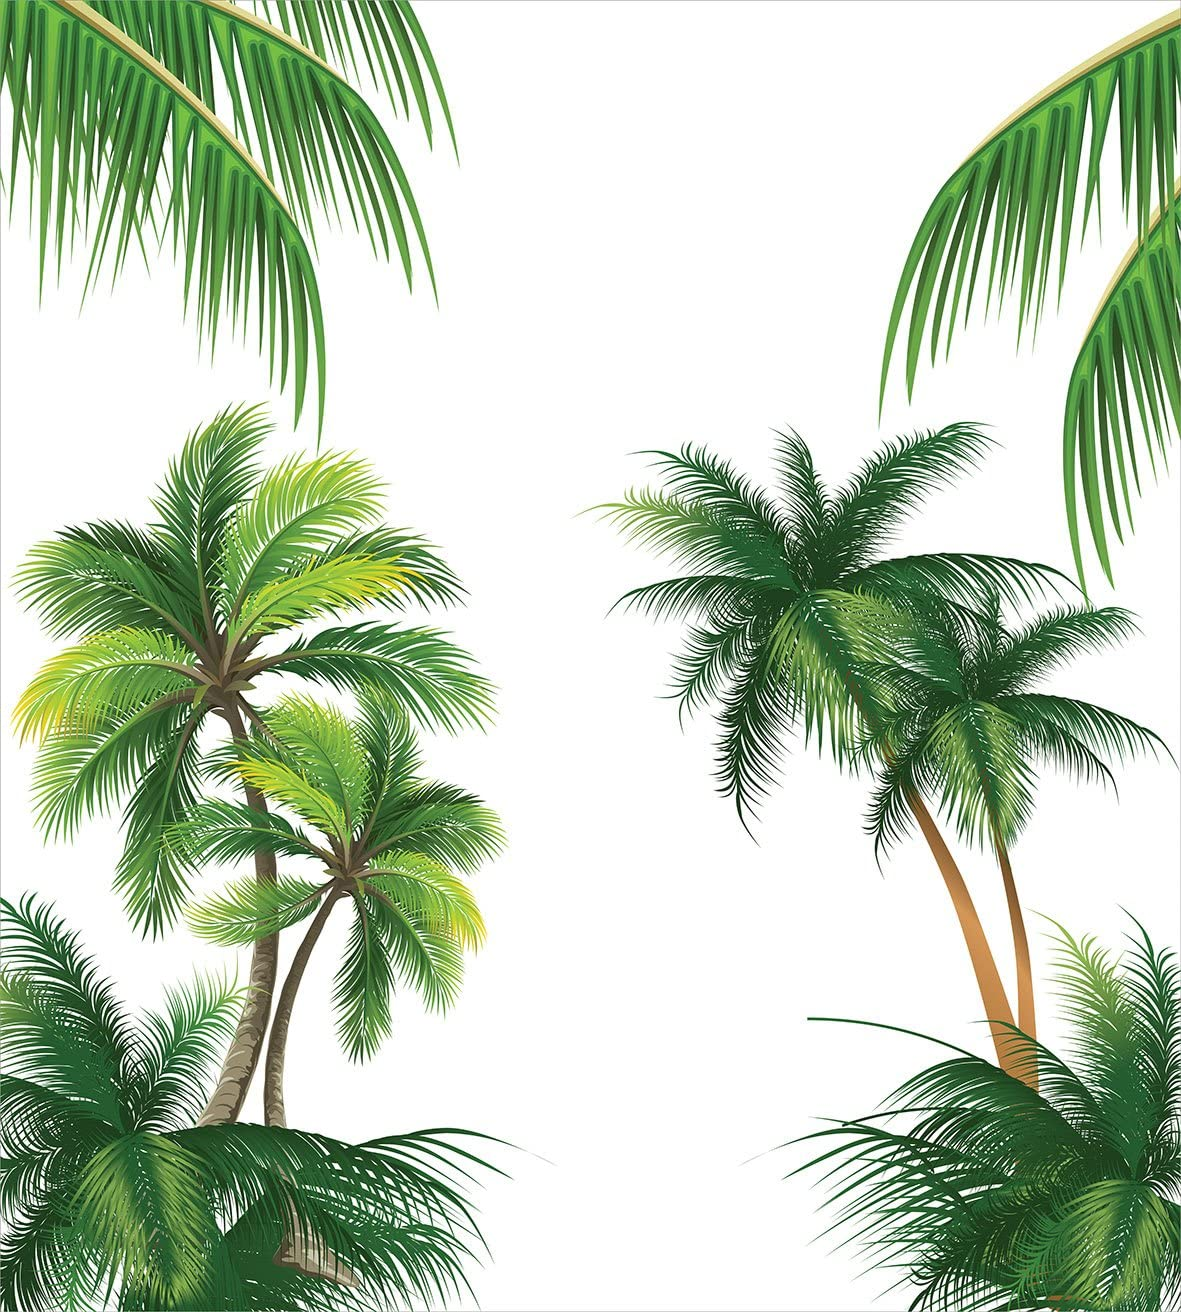 A Decorative 3 Piece Bedding Set with 2 Pillow Shams Coconut Palm Tree Nature Paradise Plants Foliage Leaves Digital Theme Illustration Art Ambesonne Tropical Duvet Cover Set King Size Hunter Green nev/_29047/_king